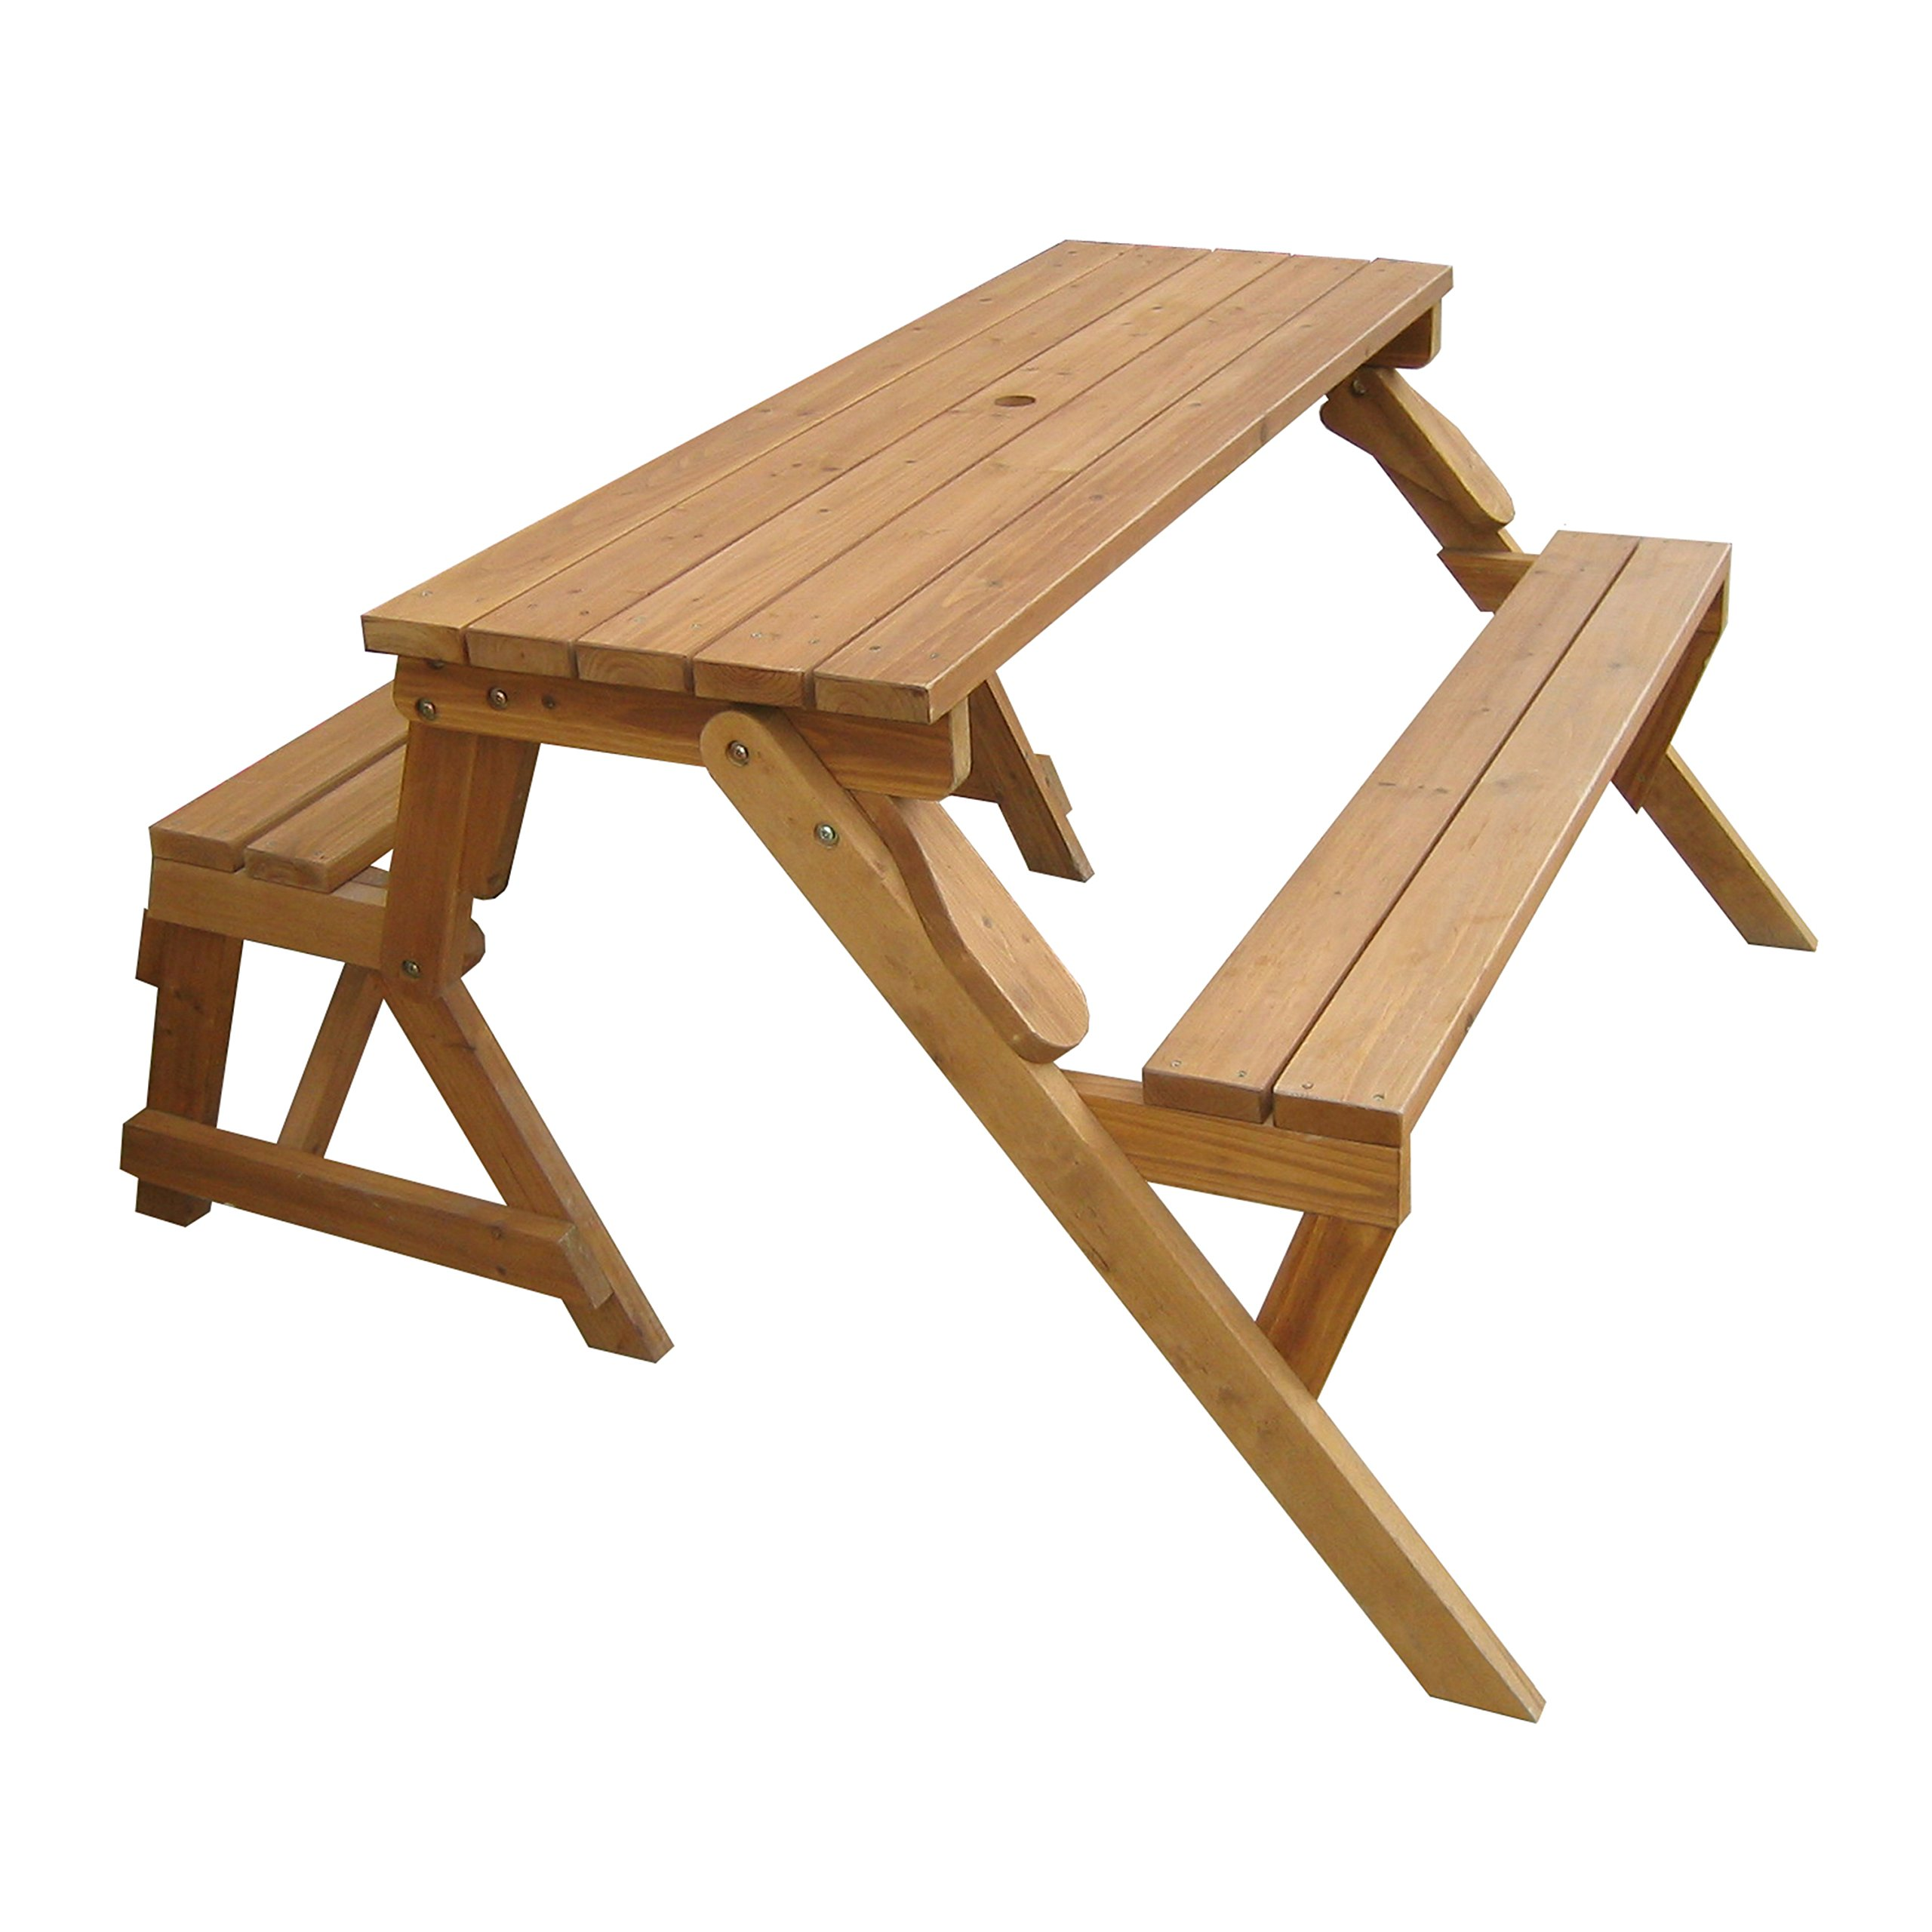 Plans For Building A Picnic Table Find House Plans